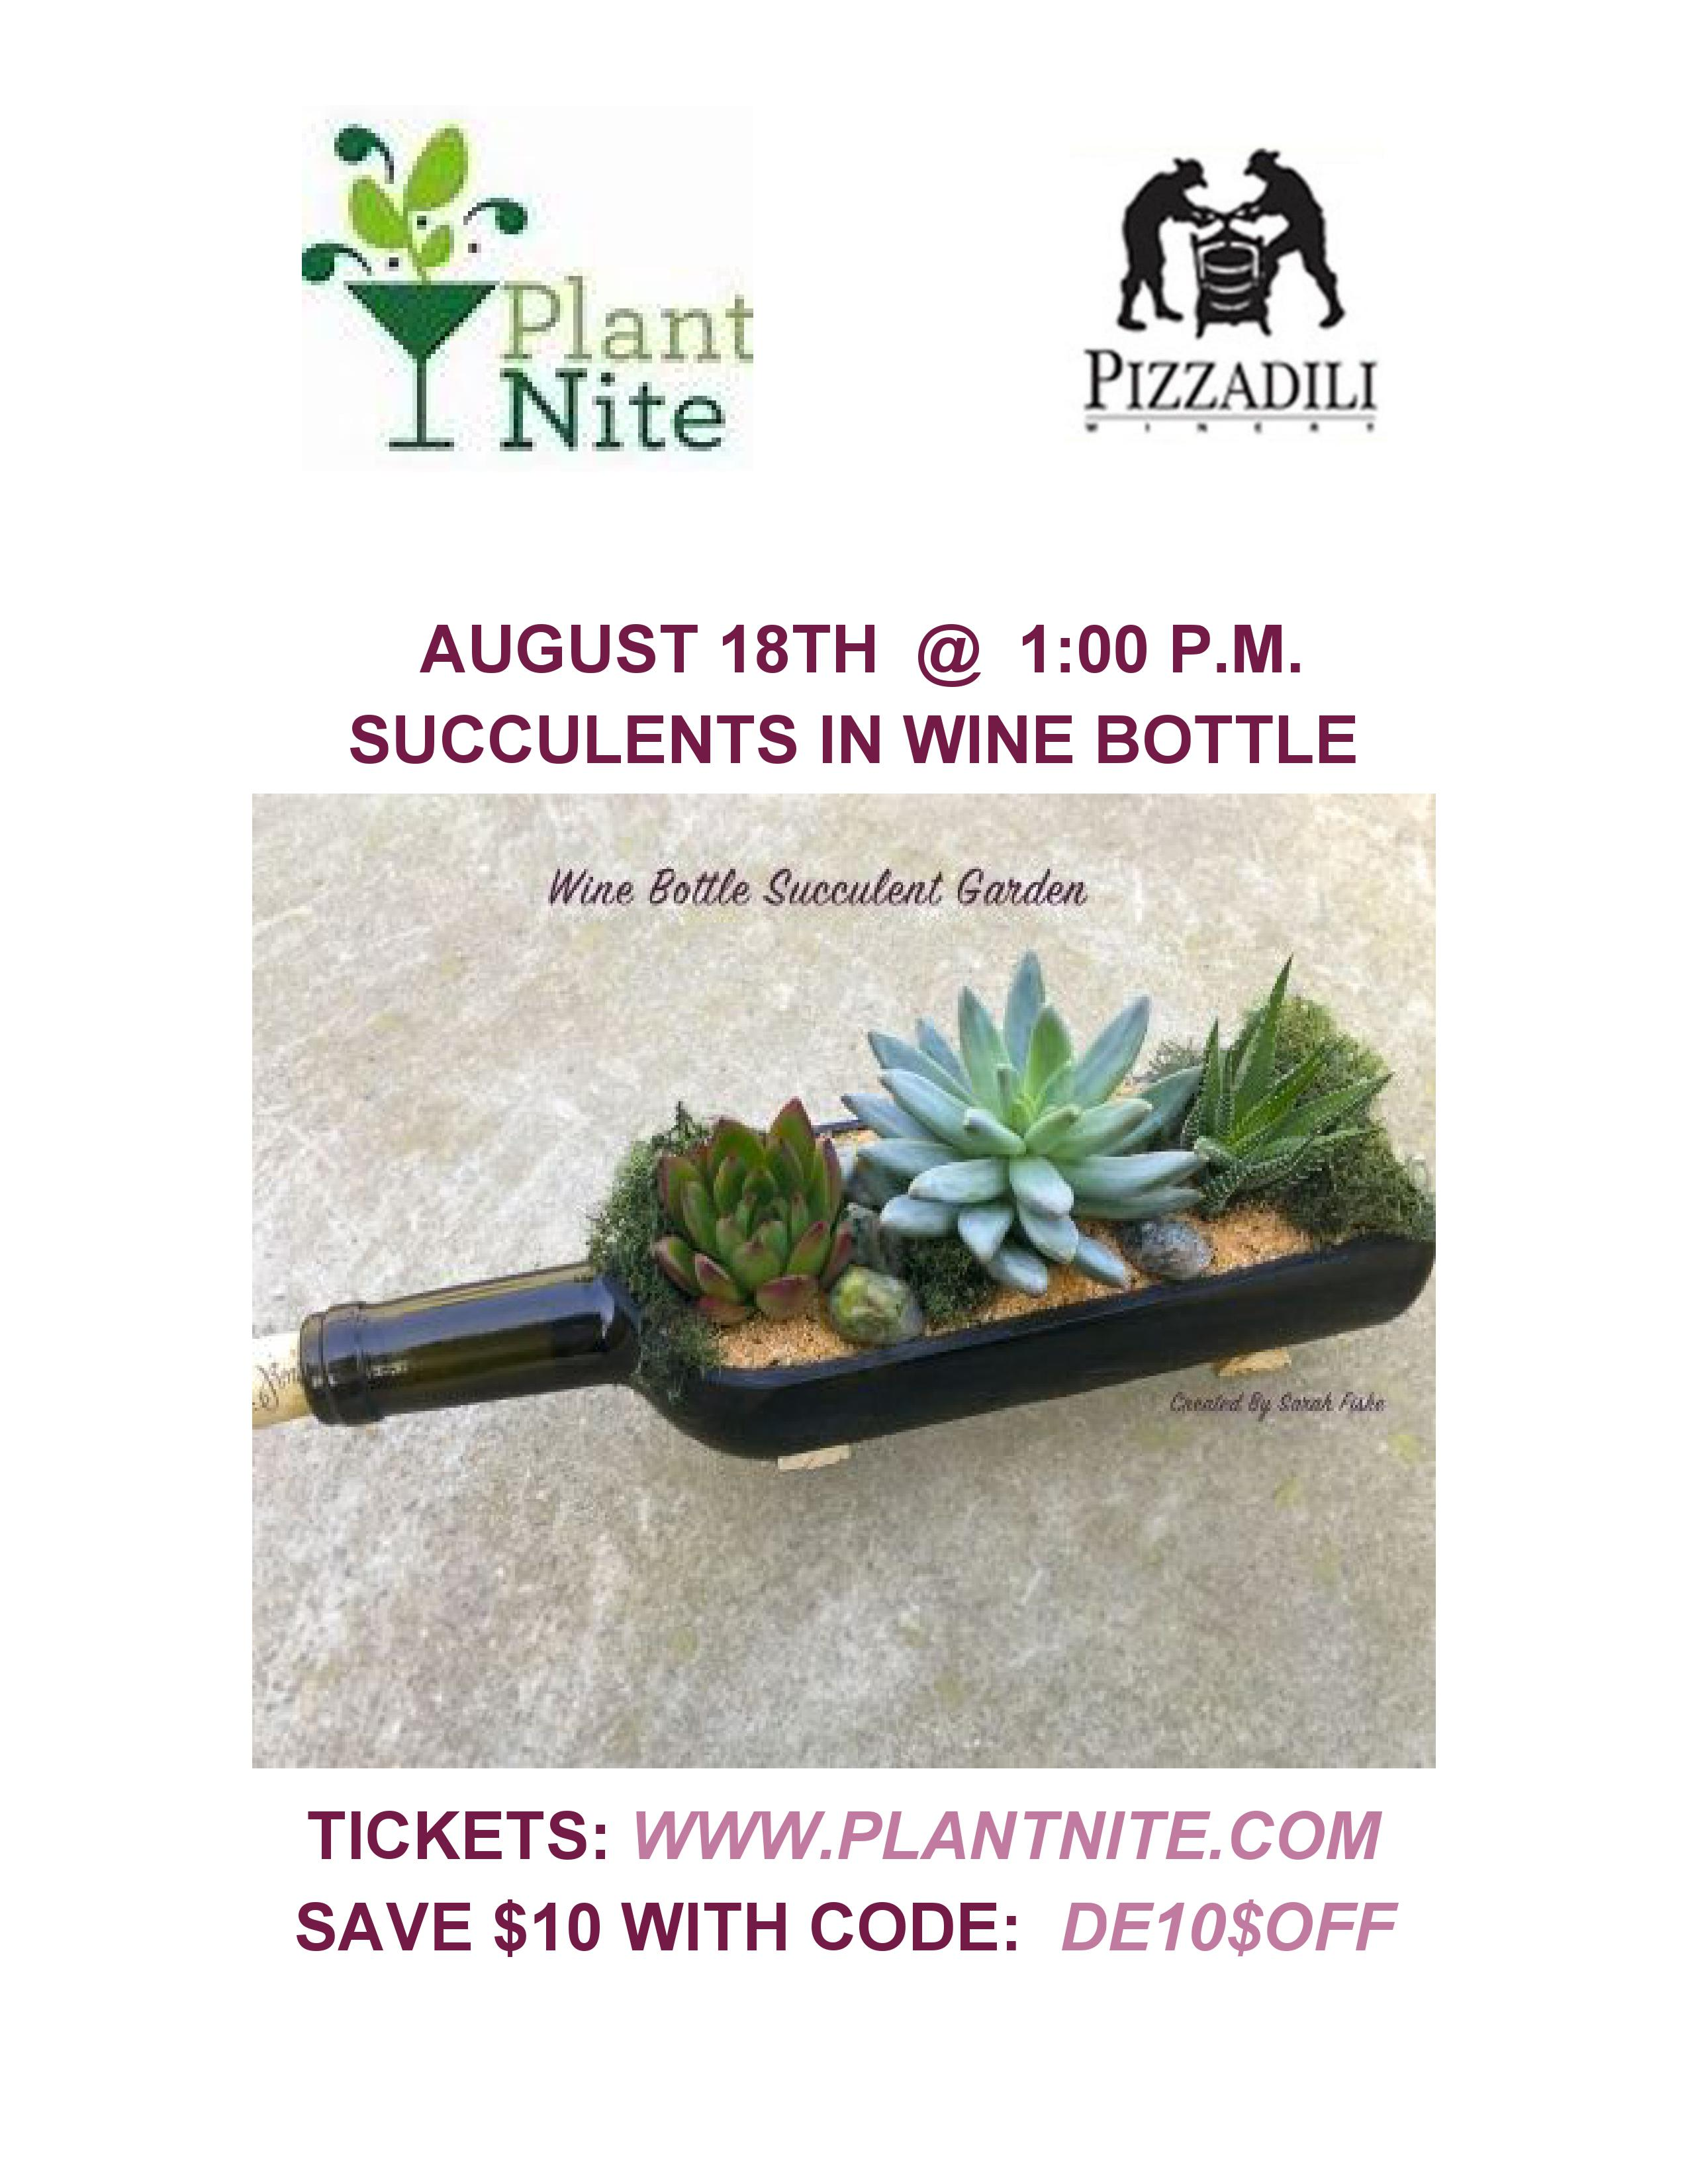 Plant Night August 18th @ 1 pm. Succulents in wine bottles.